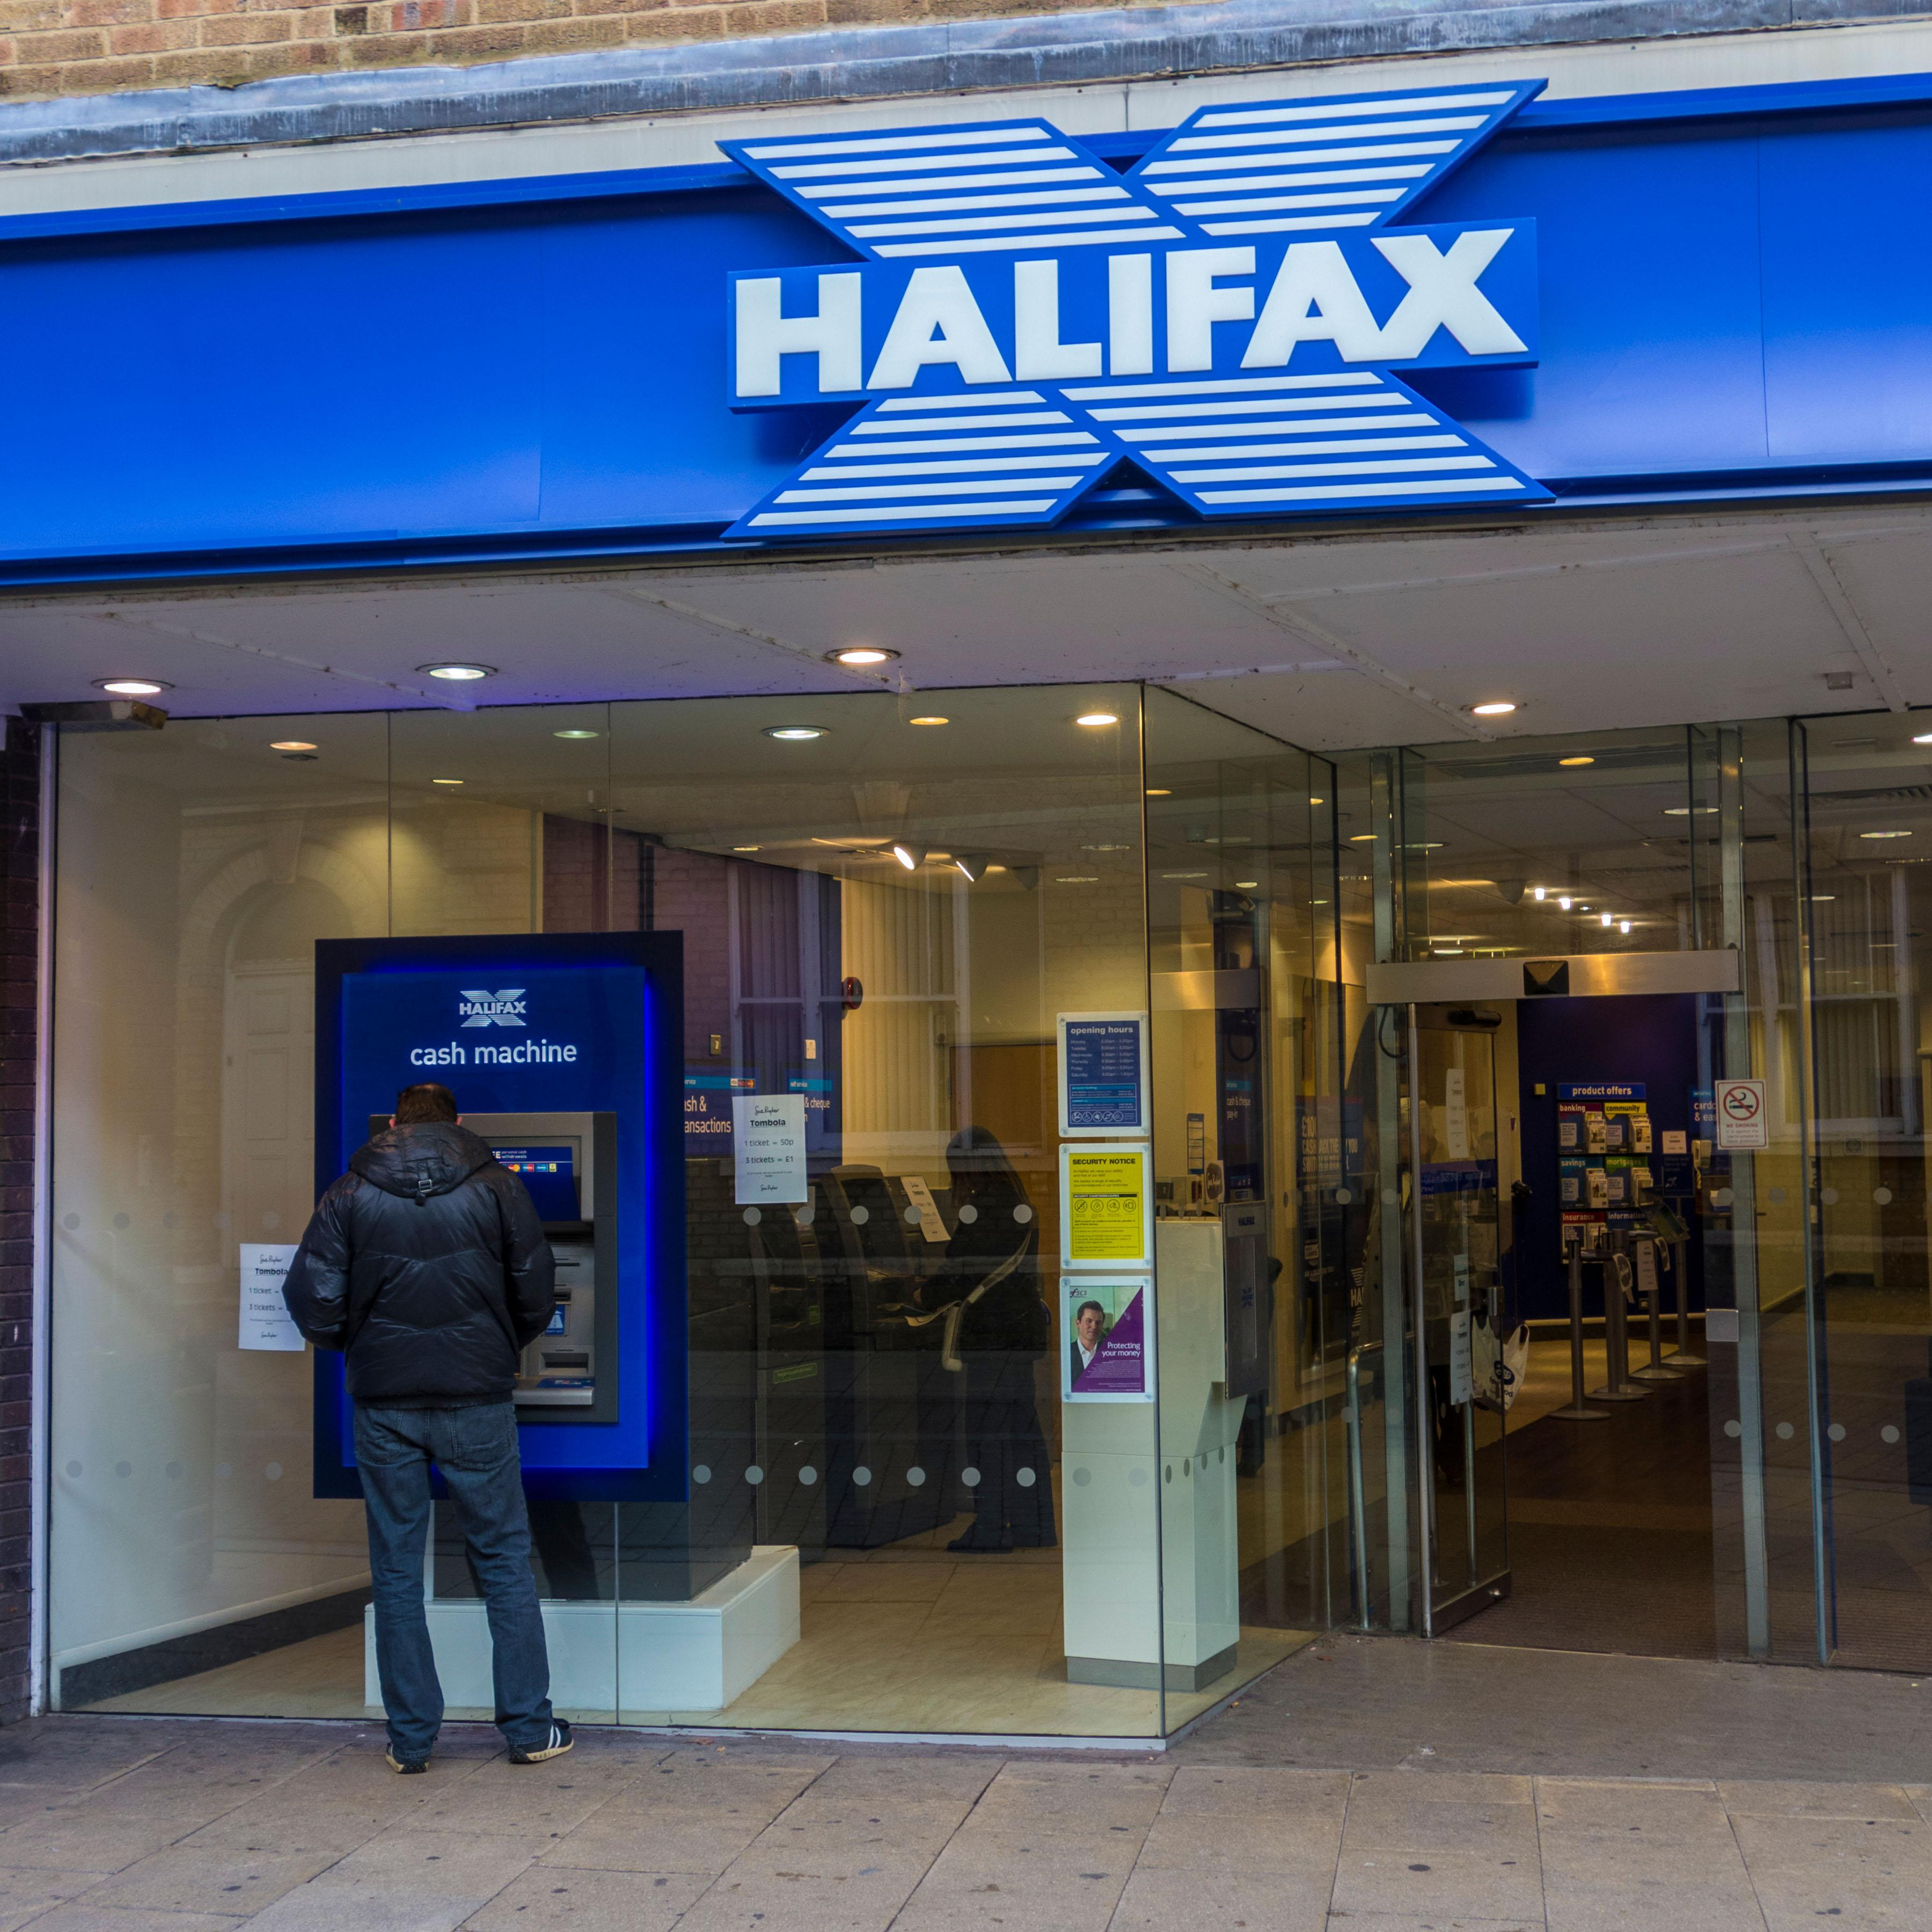 Halifax And Lloyds Bank Online Banking Down With Hundreds Of Customers Struggling To Log Into Accounts